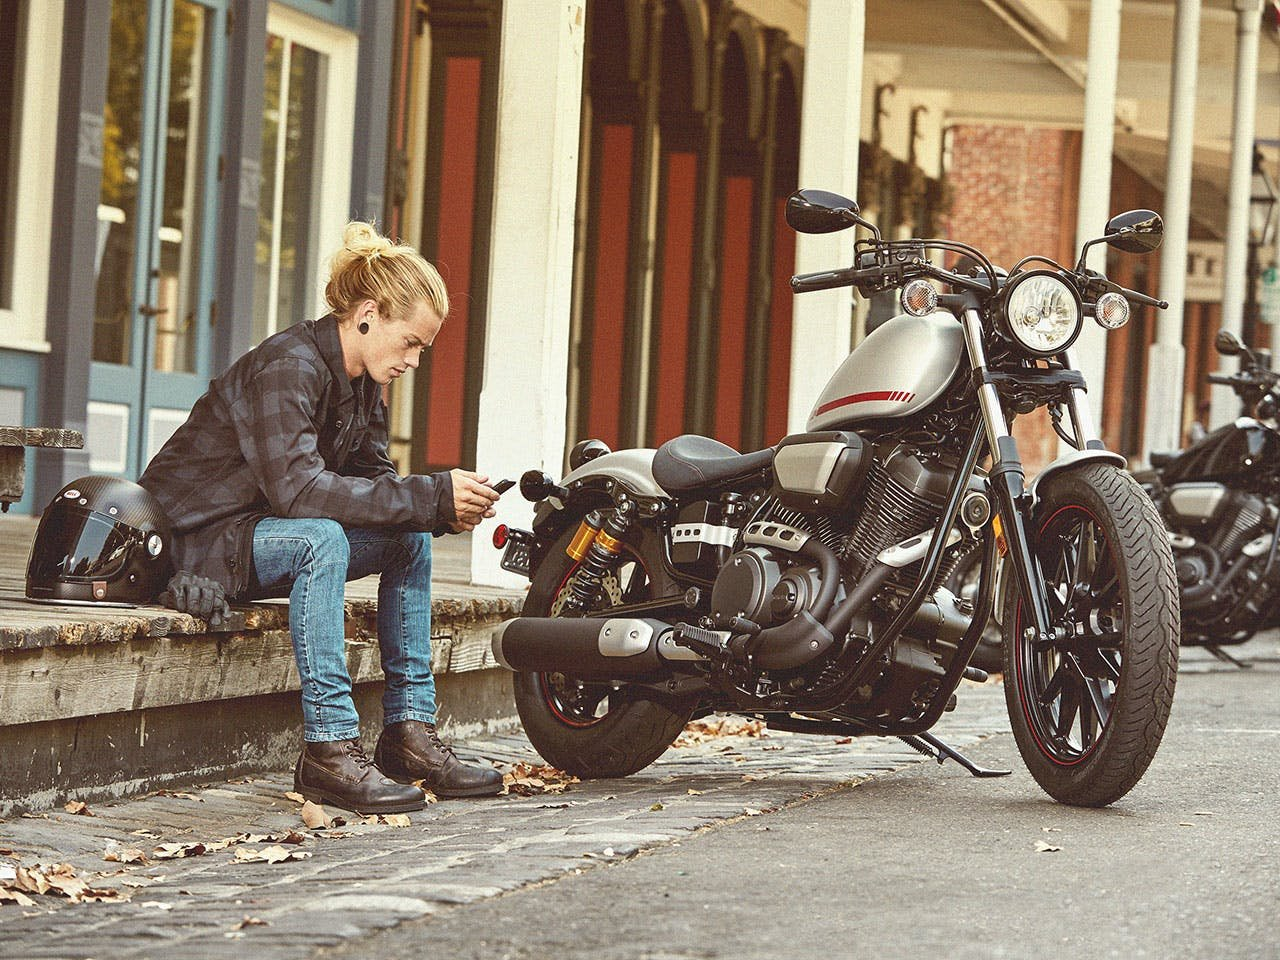 Yamaha Bolt R-Spec motorcycle parked on the road